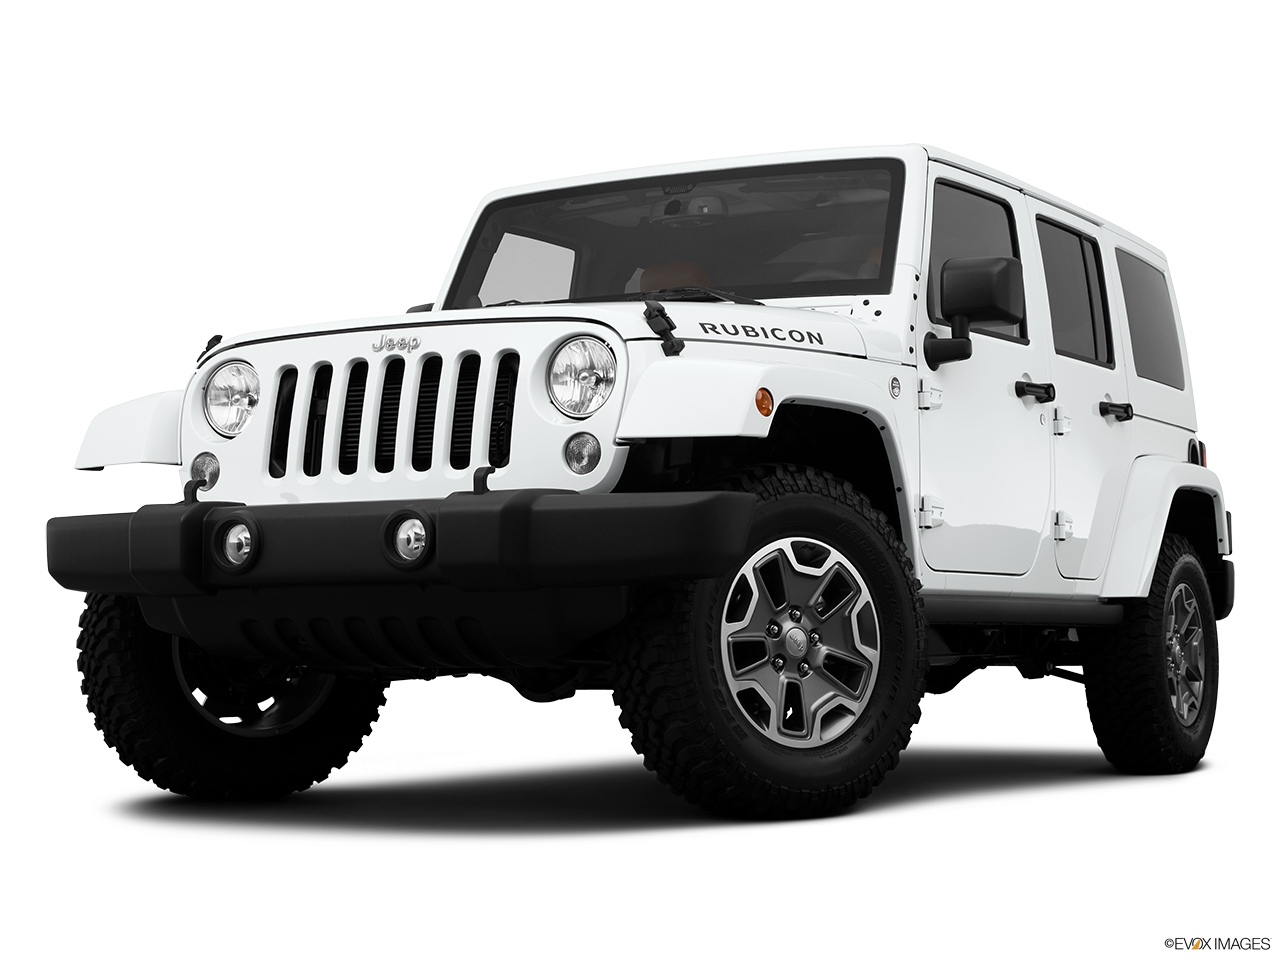 2015 Jeep Wrangler Unlimited 4WD 4 Door Rubicon - Front angle view, low  wide perspective